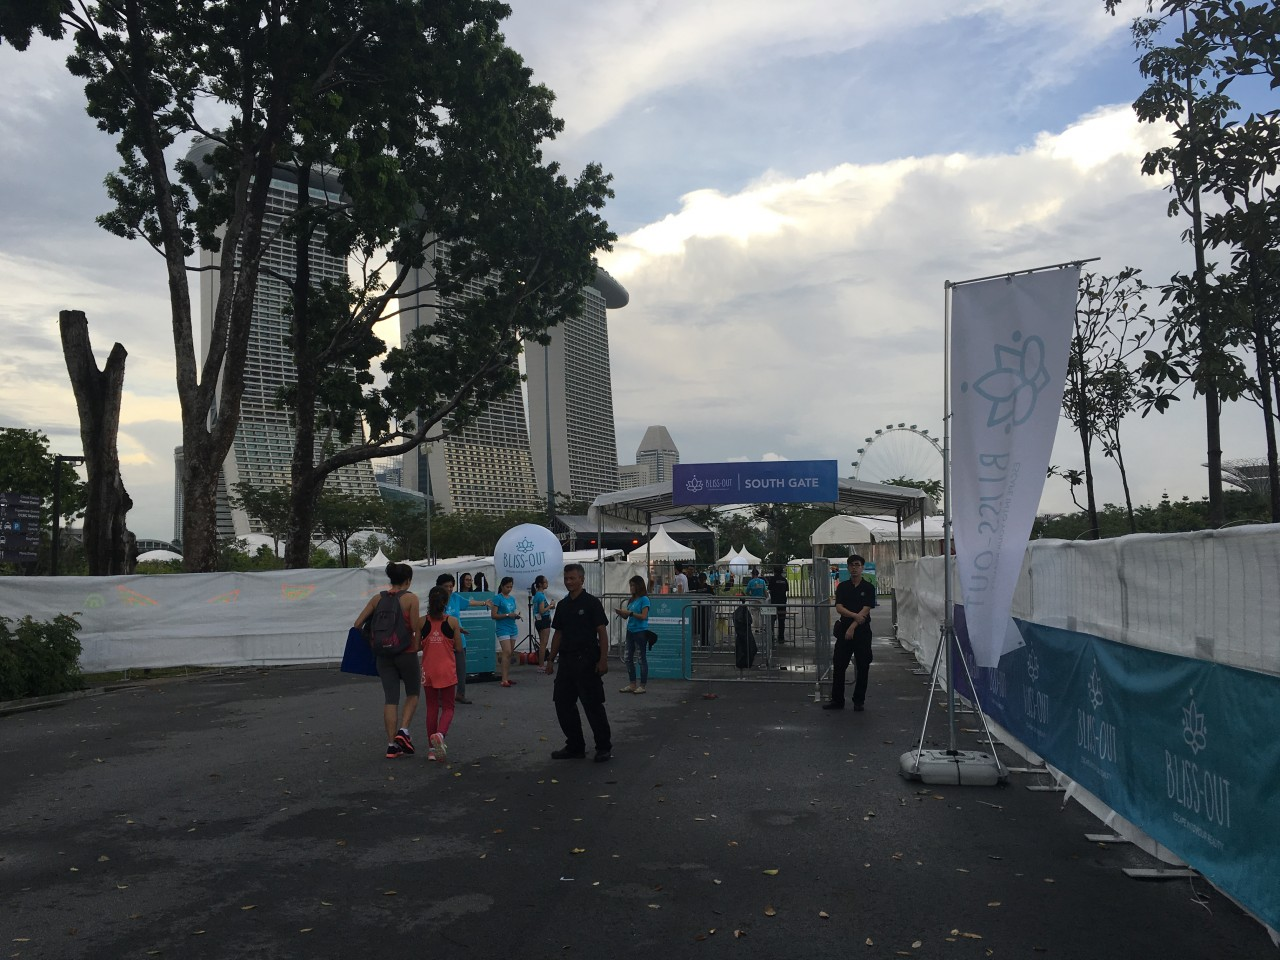 qool enviro portable toilets in bliss out 2015 4